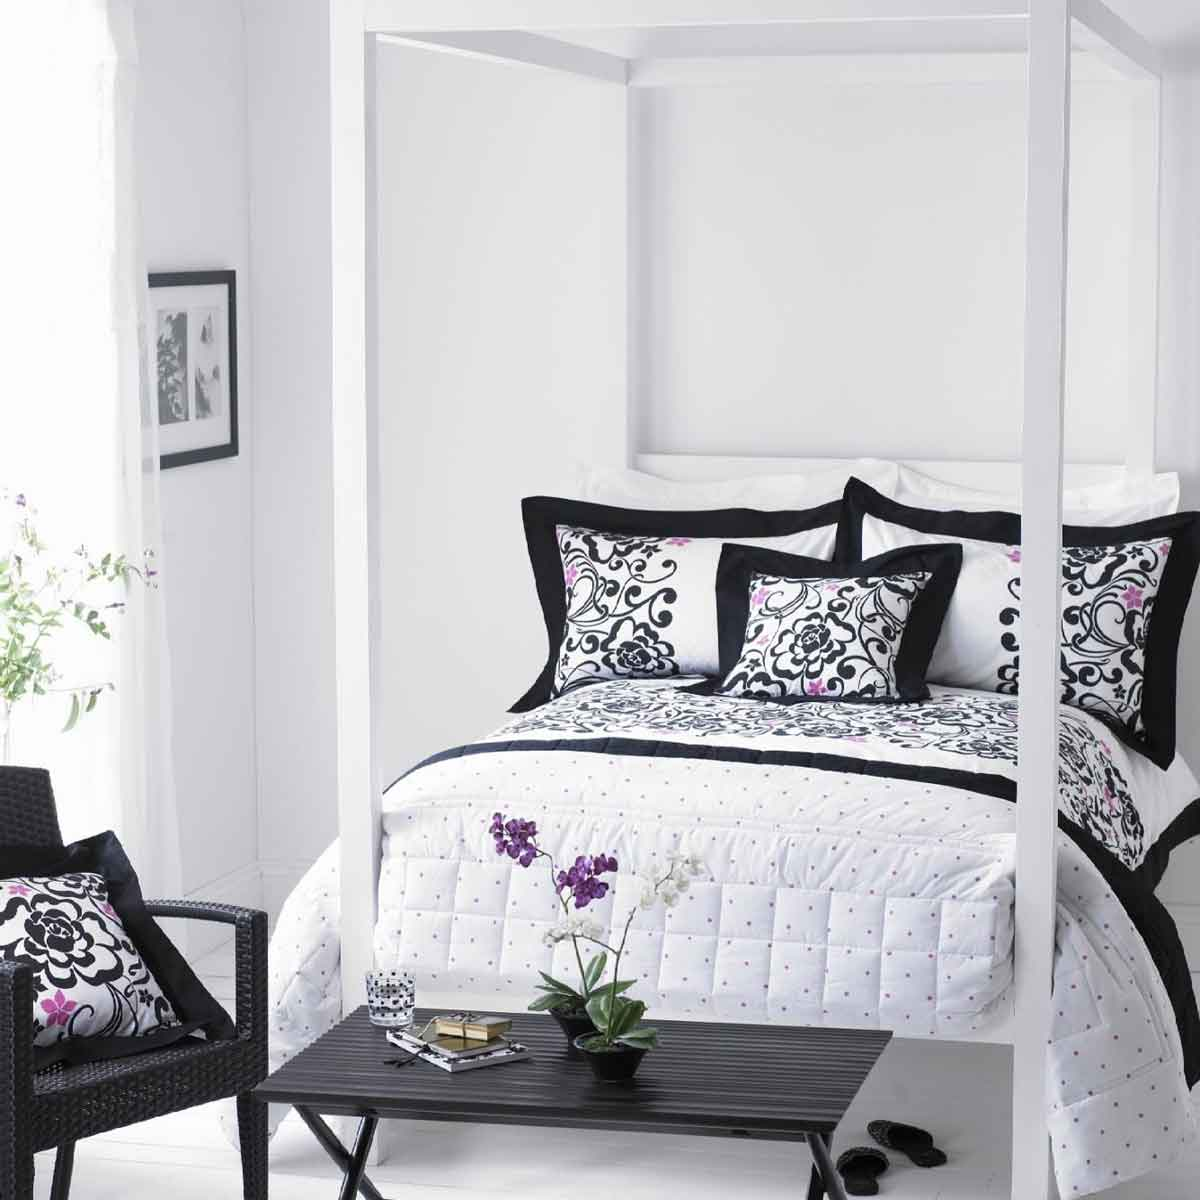 Black and white bedrooms designs home design inside for Bedroom decorative accessories